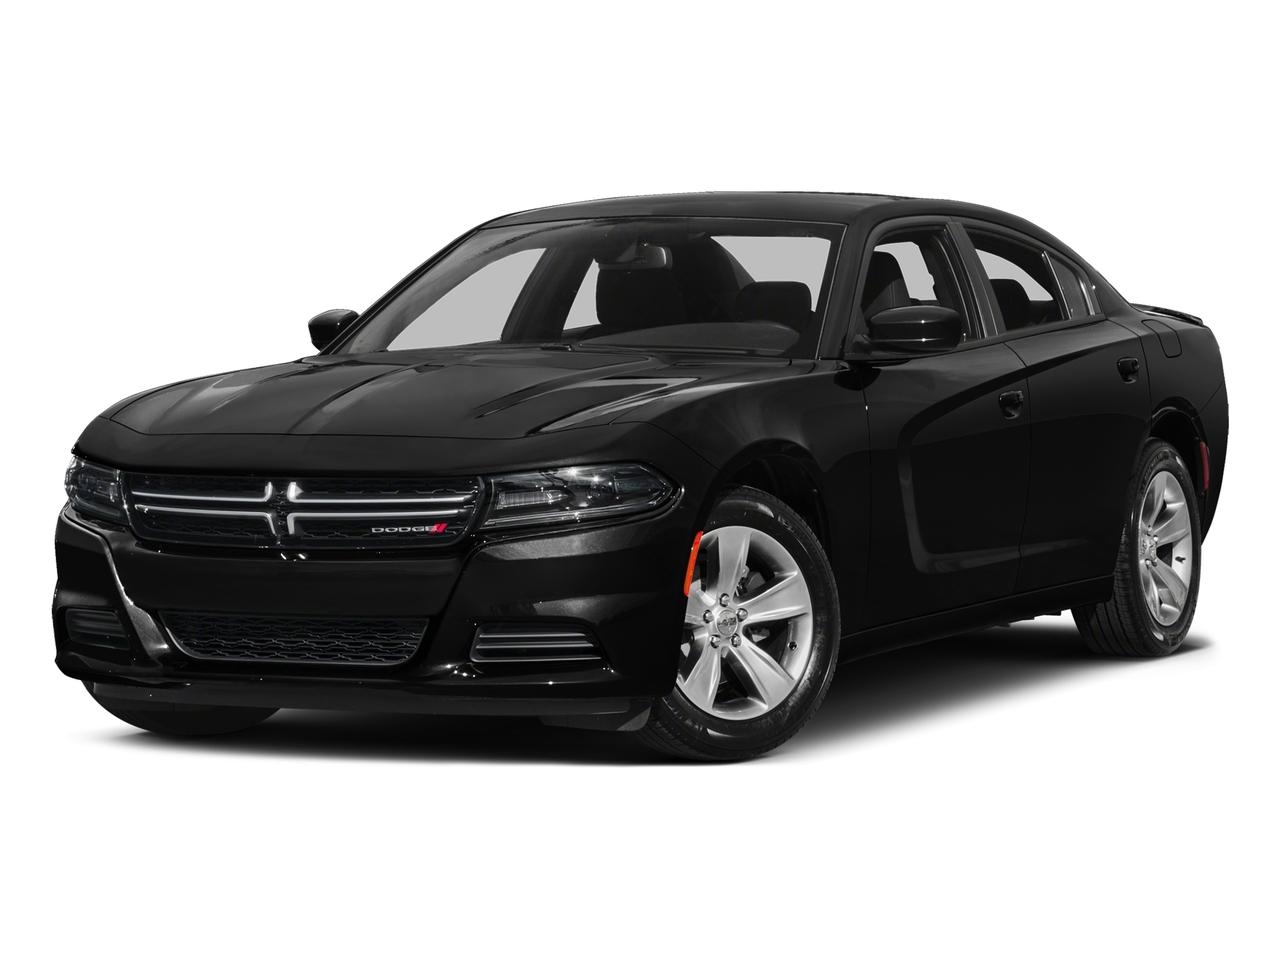 2015 Dodge Charger Vehicle Photo in Corpus Christi, TX 78410-4506